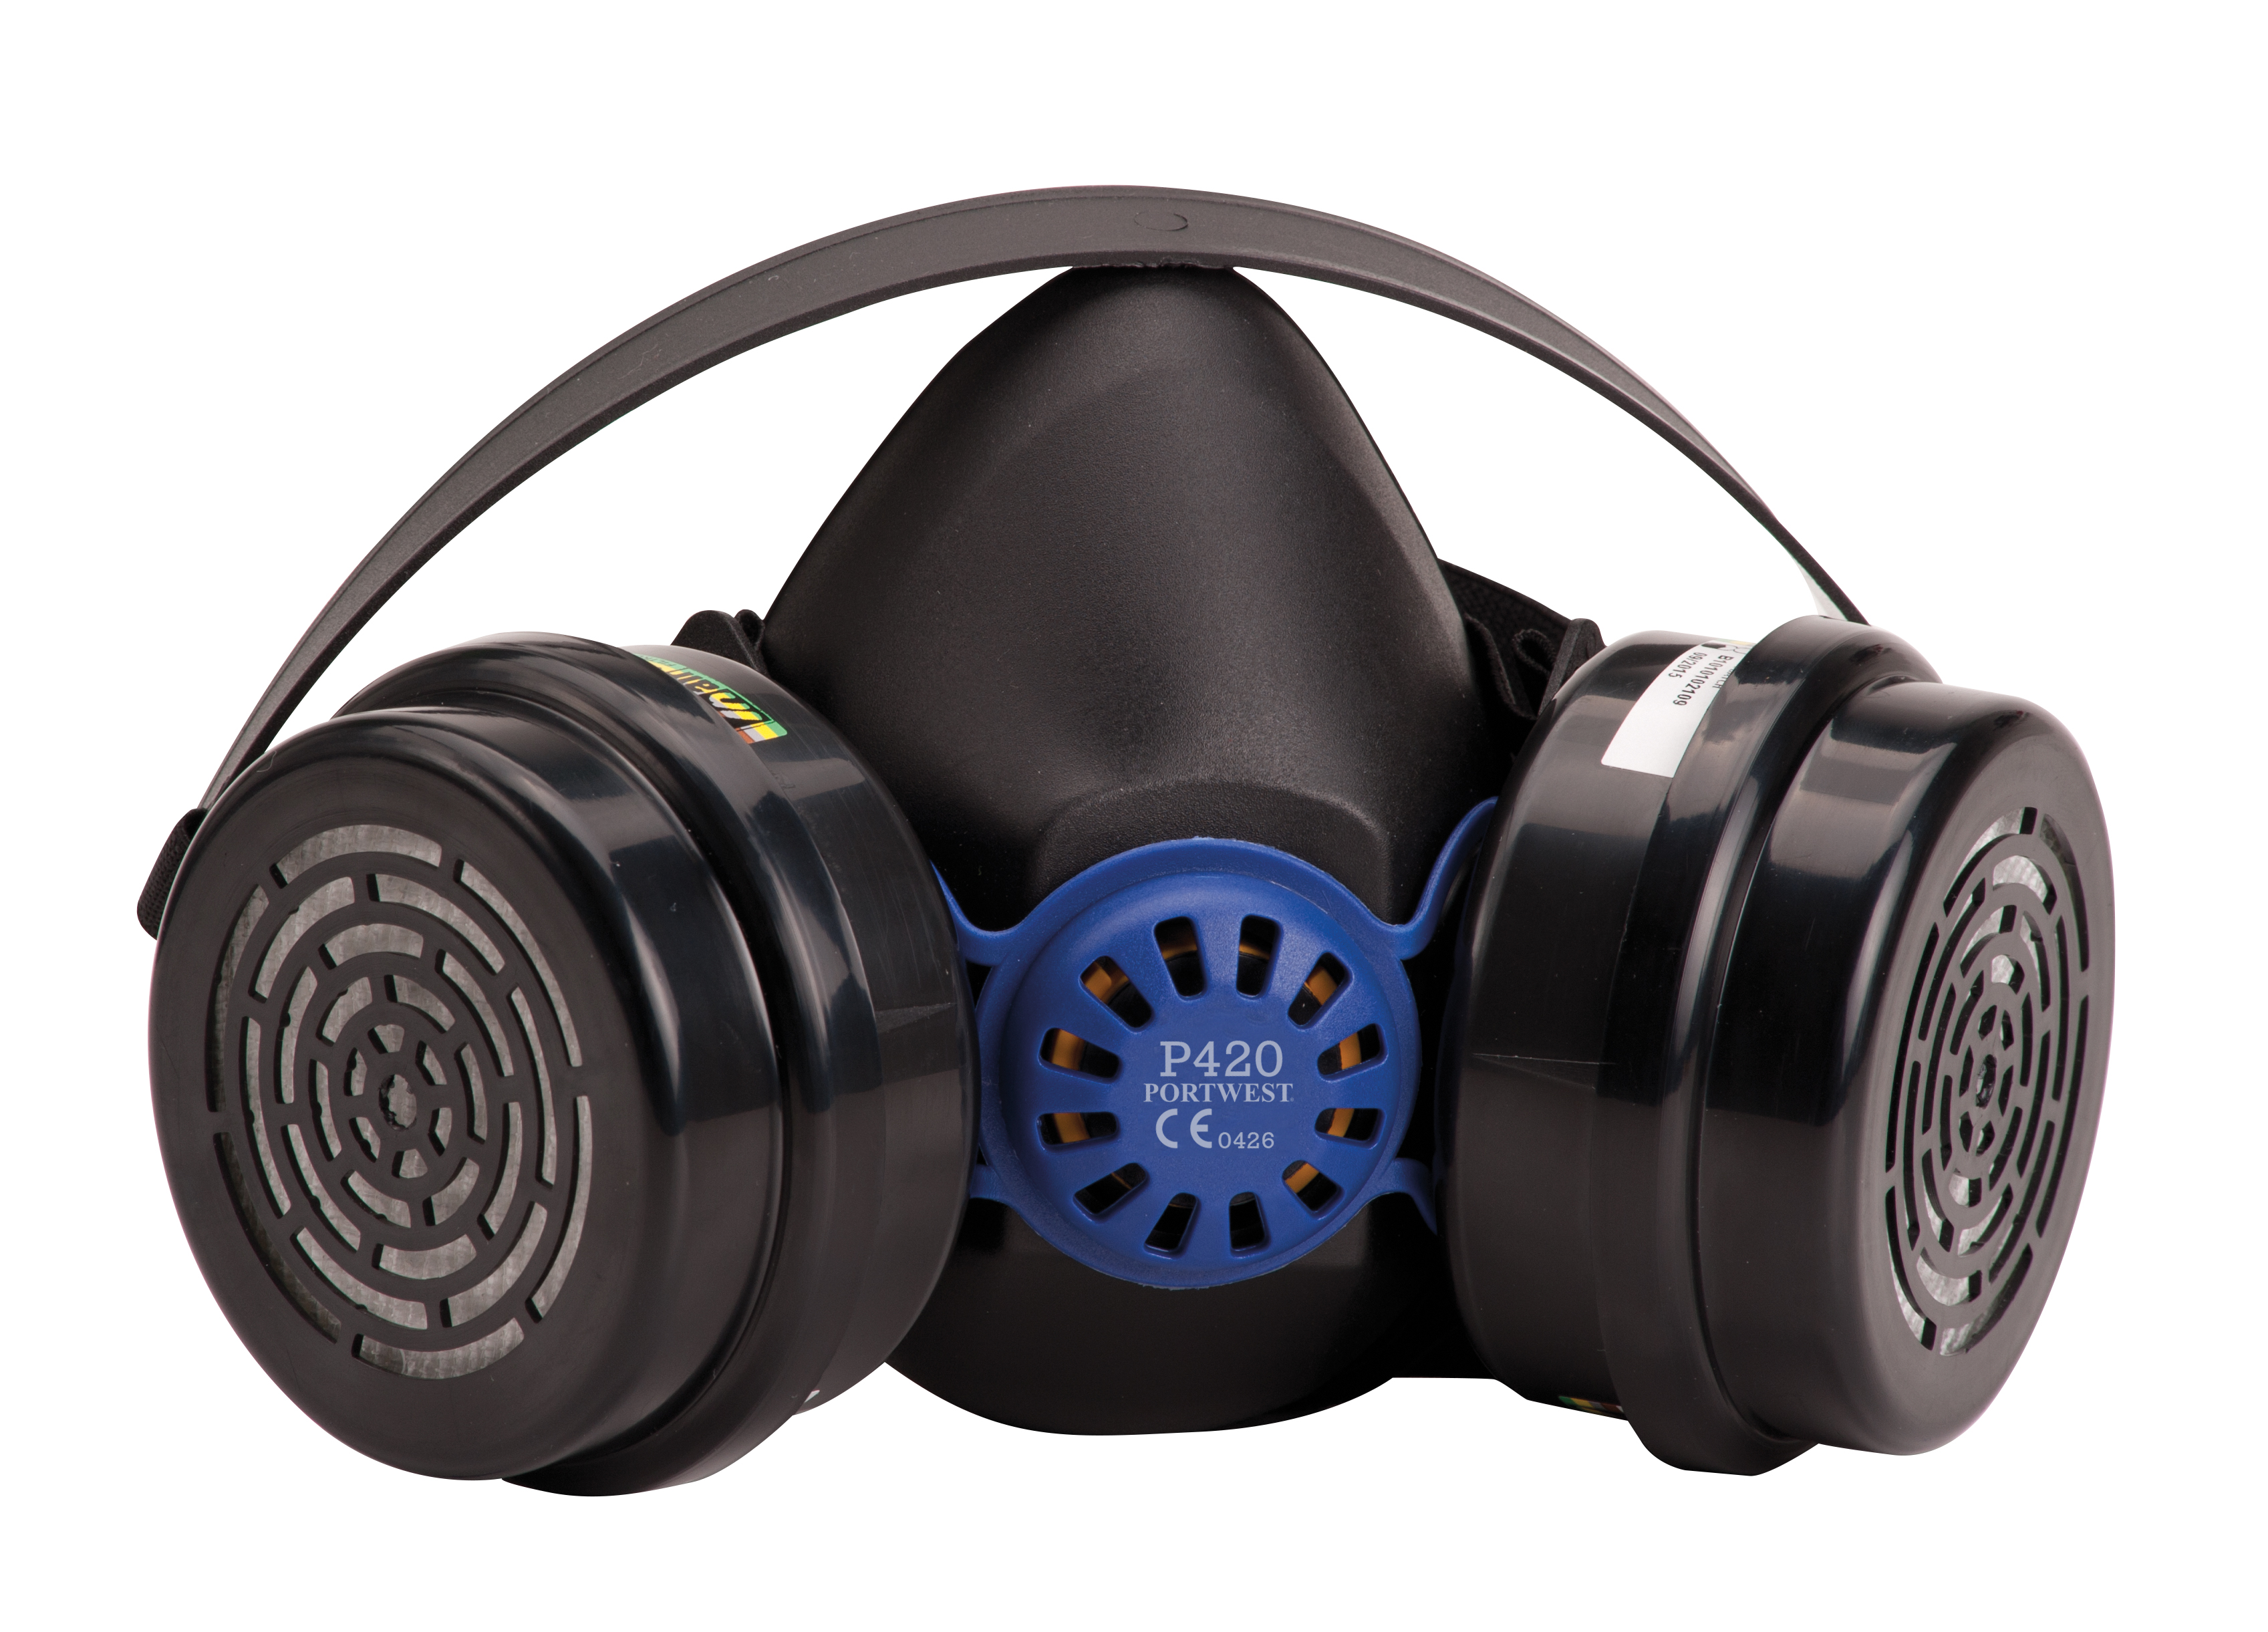 P420 Portwest Vancouver Twin Filter Rubber Half Mask Respirator